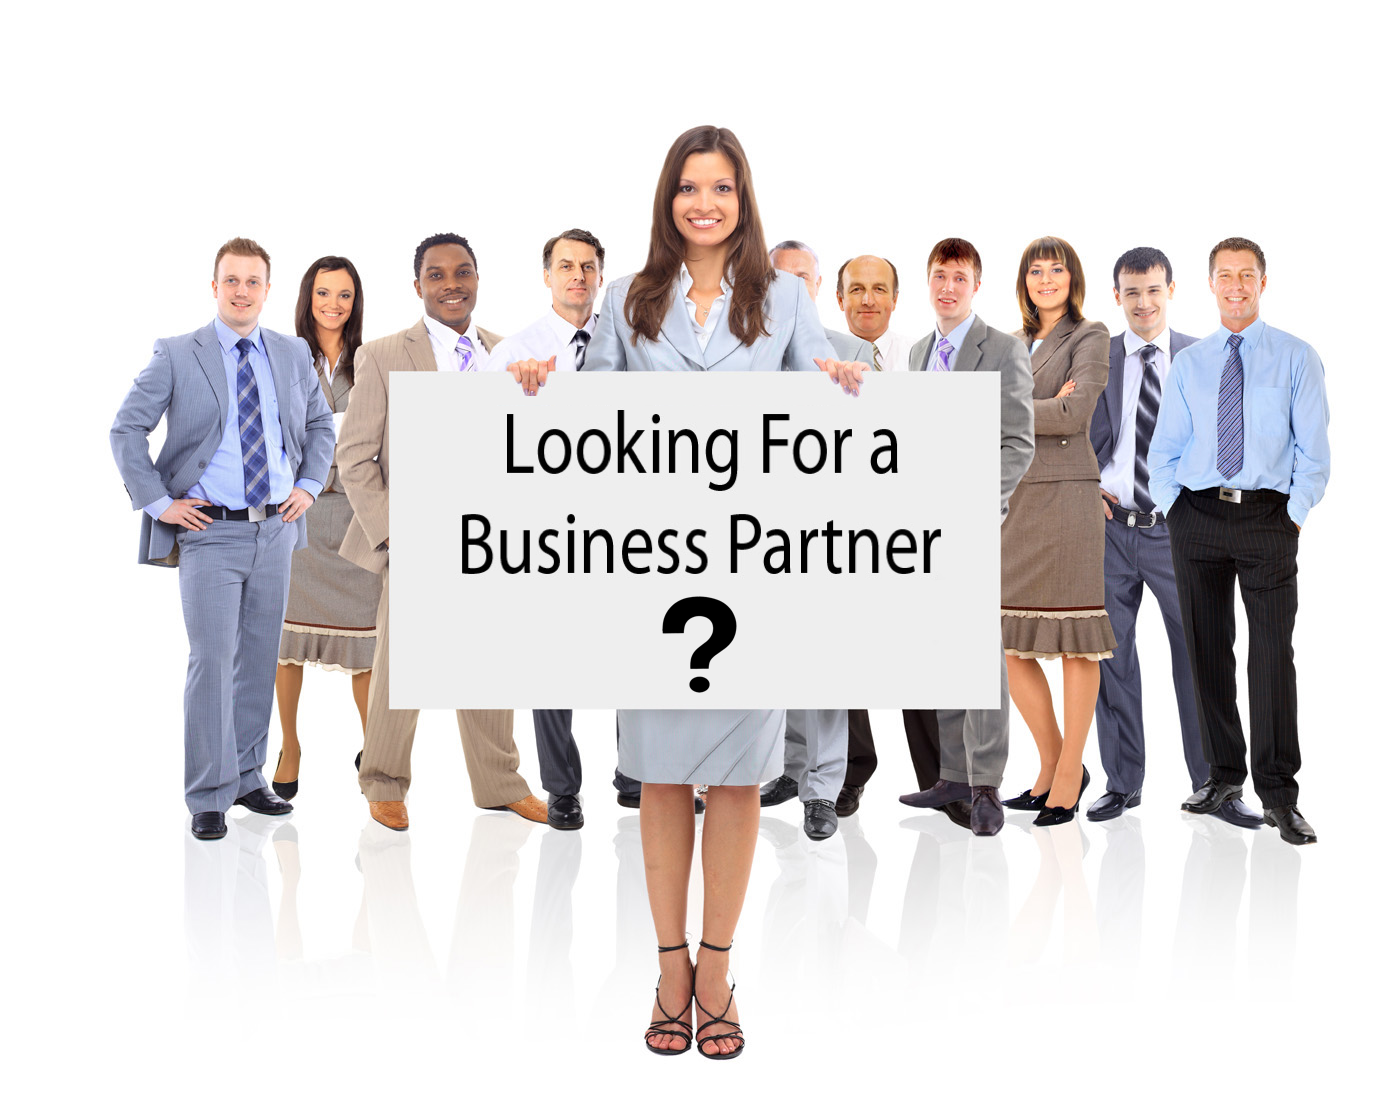 https://0201.nccdn.net/4_2/000/000/03f/ac7/Looking-for-a-Business-Partner.png